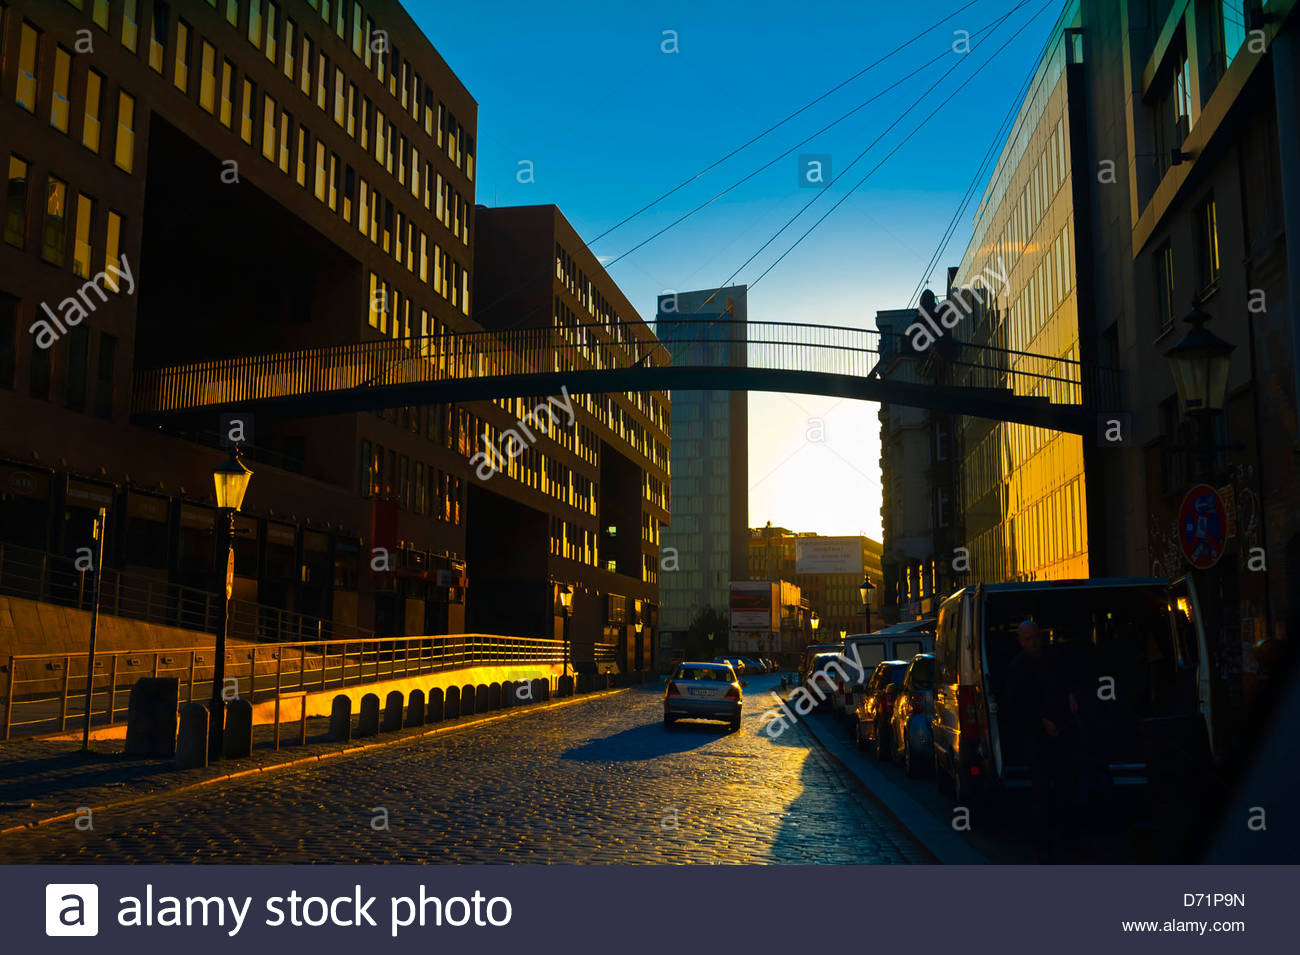 Street scene in Hafen City (the harbor along the Elbe RIver), Hamburg, Germany - Stock Image